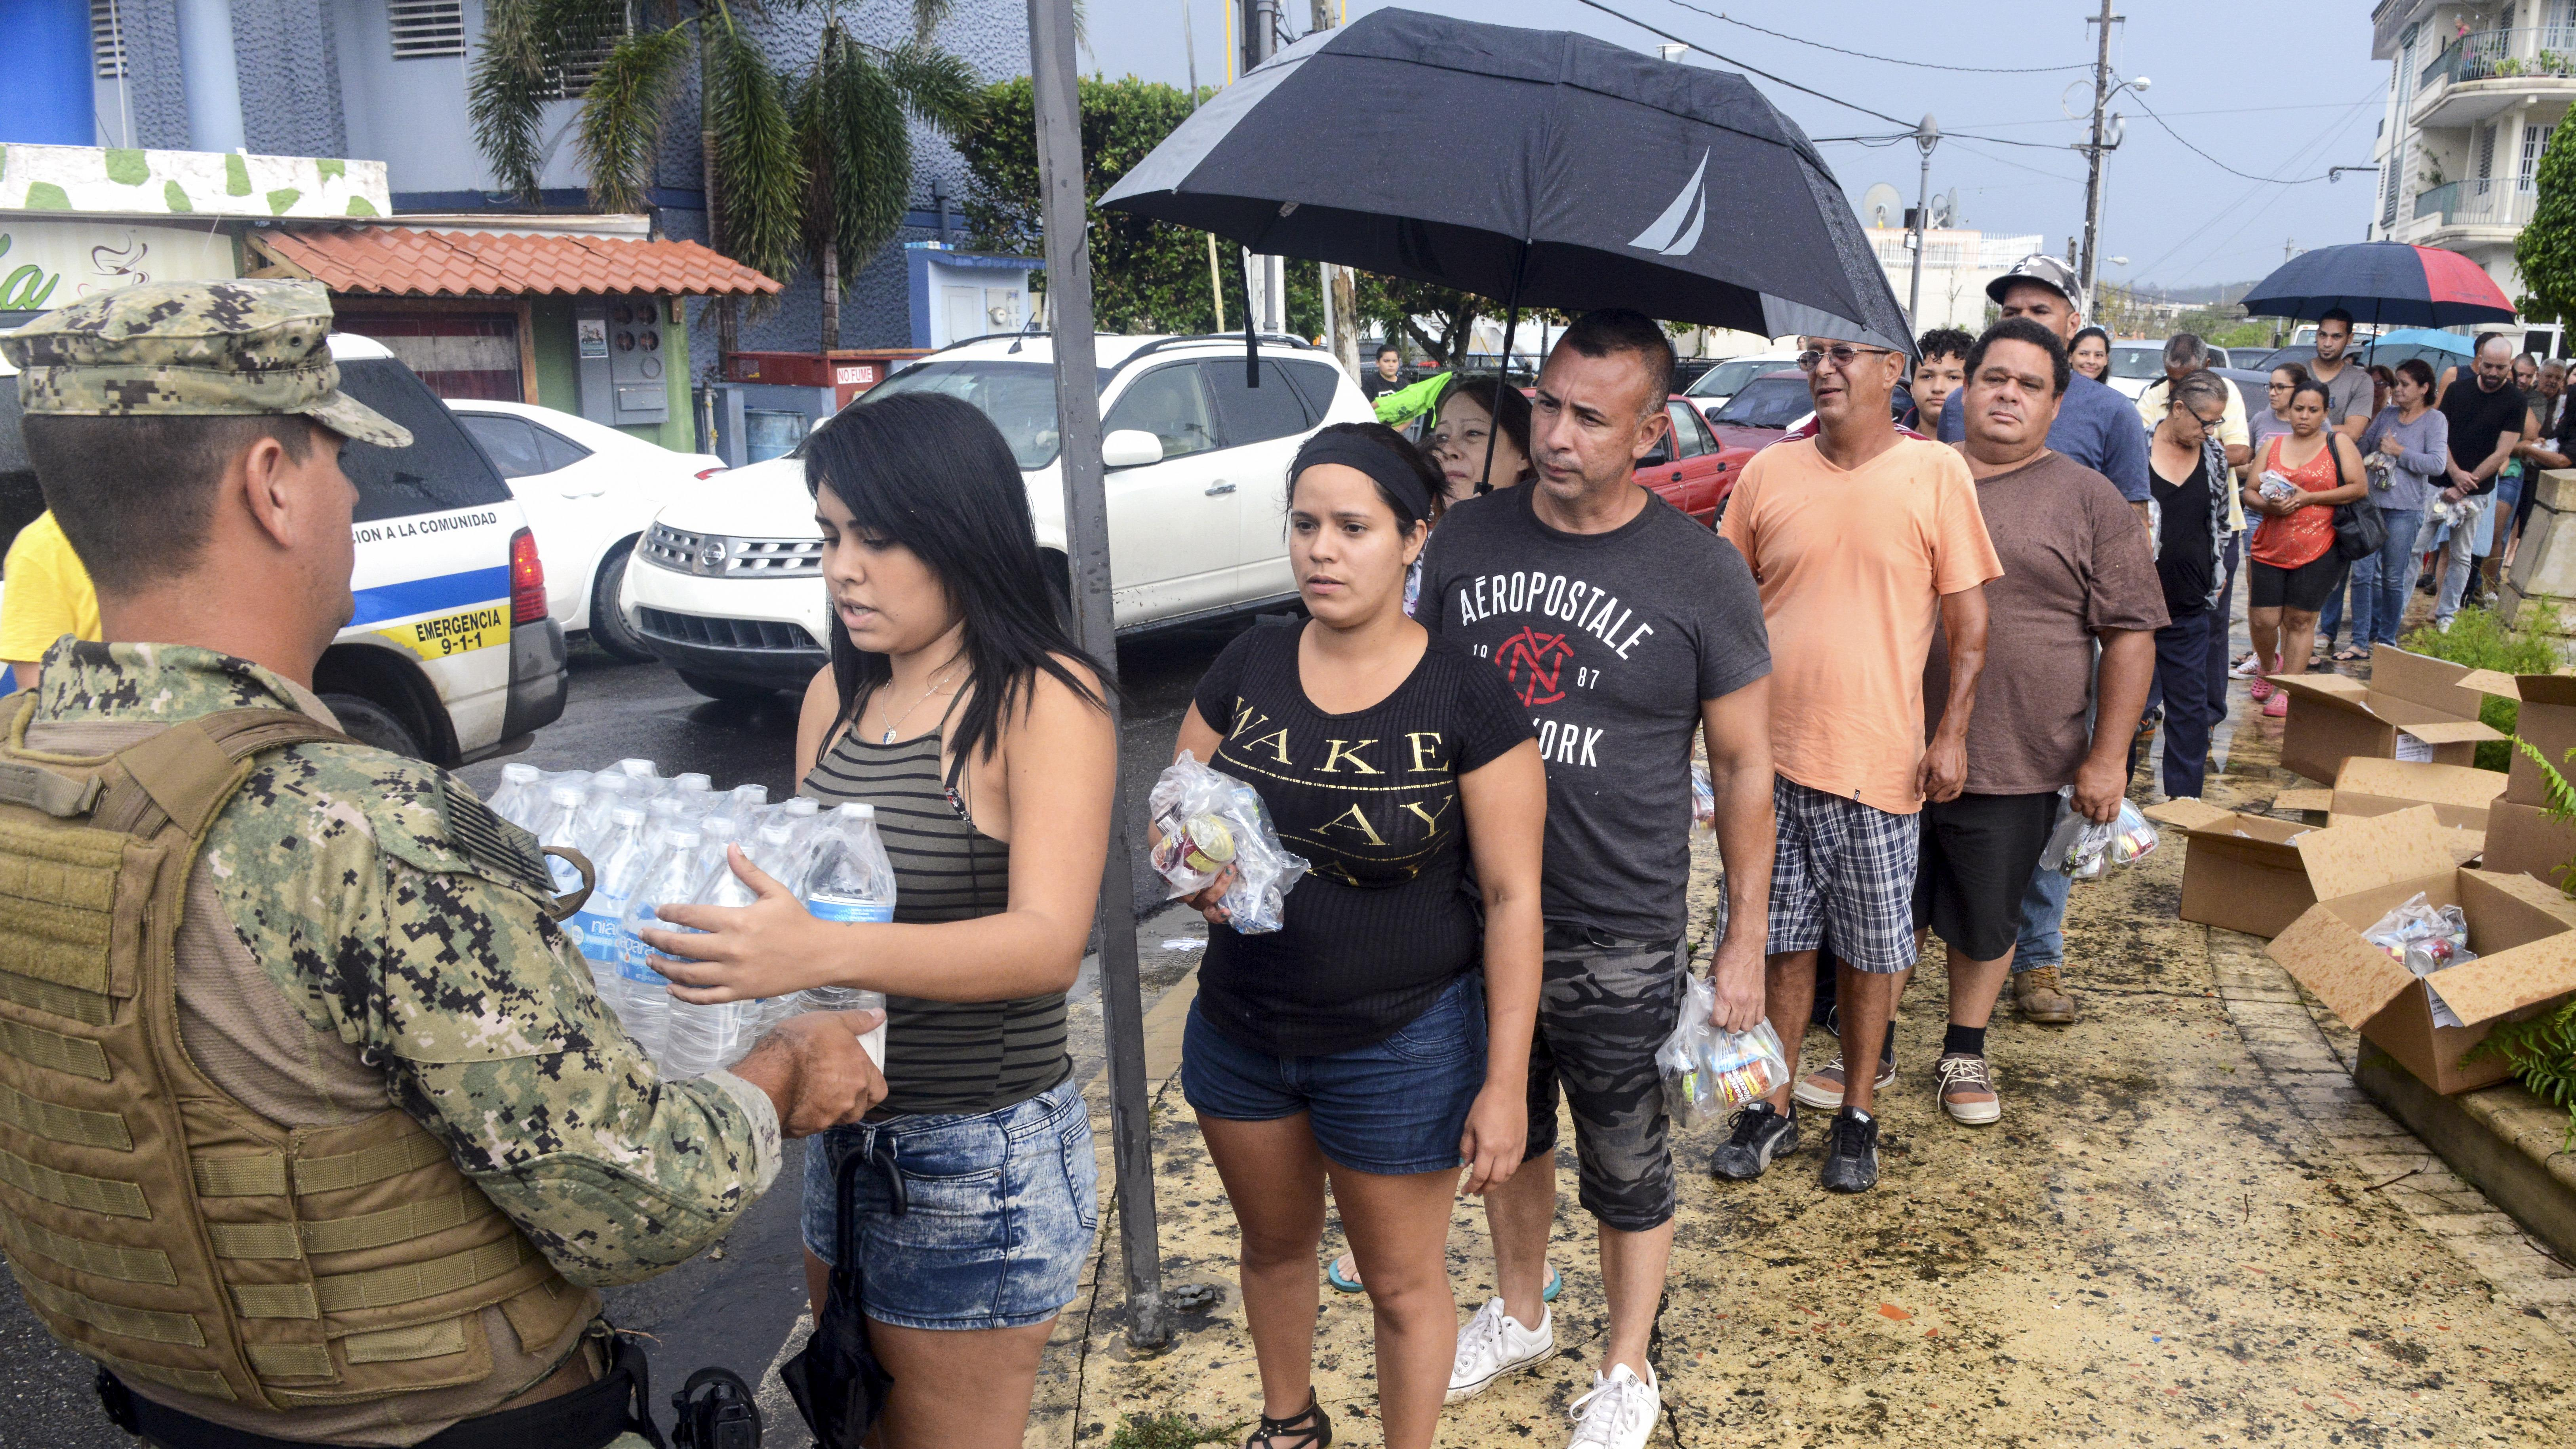 U.S. NORTHERN COMMAND CONTINUES PUERTO RICAN RELIEF EFFORTS